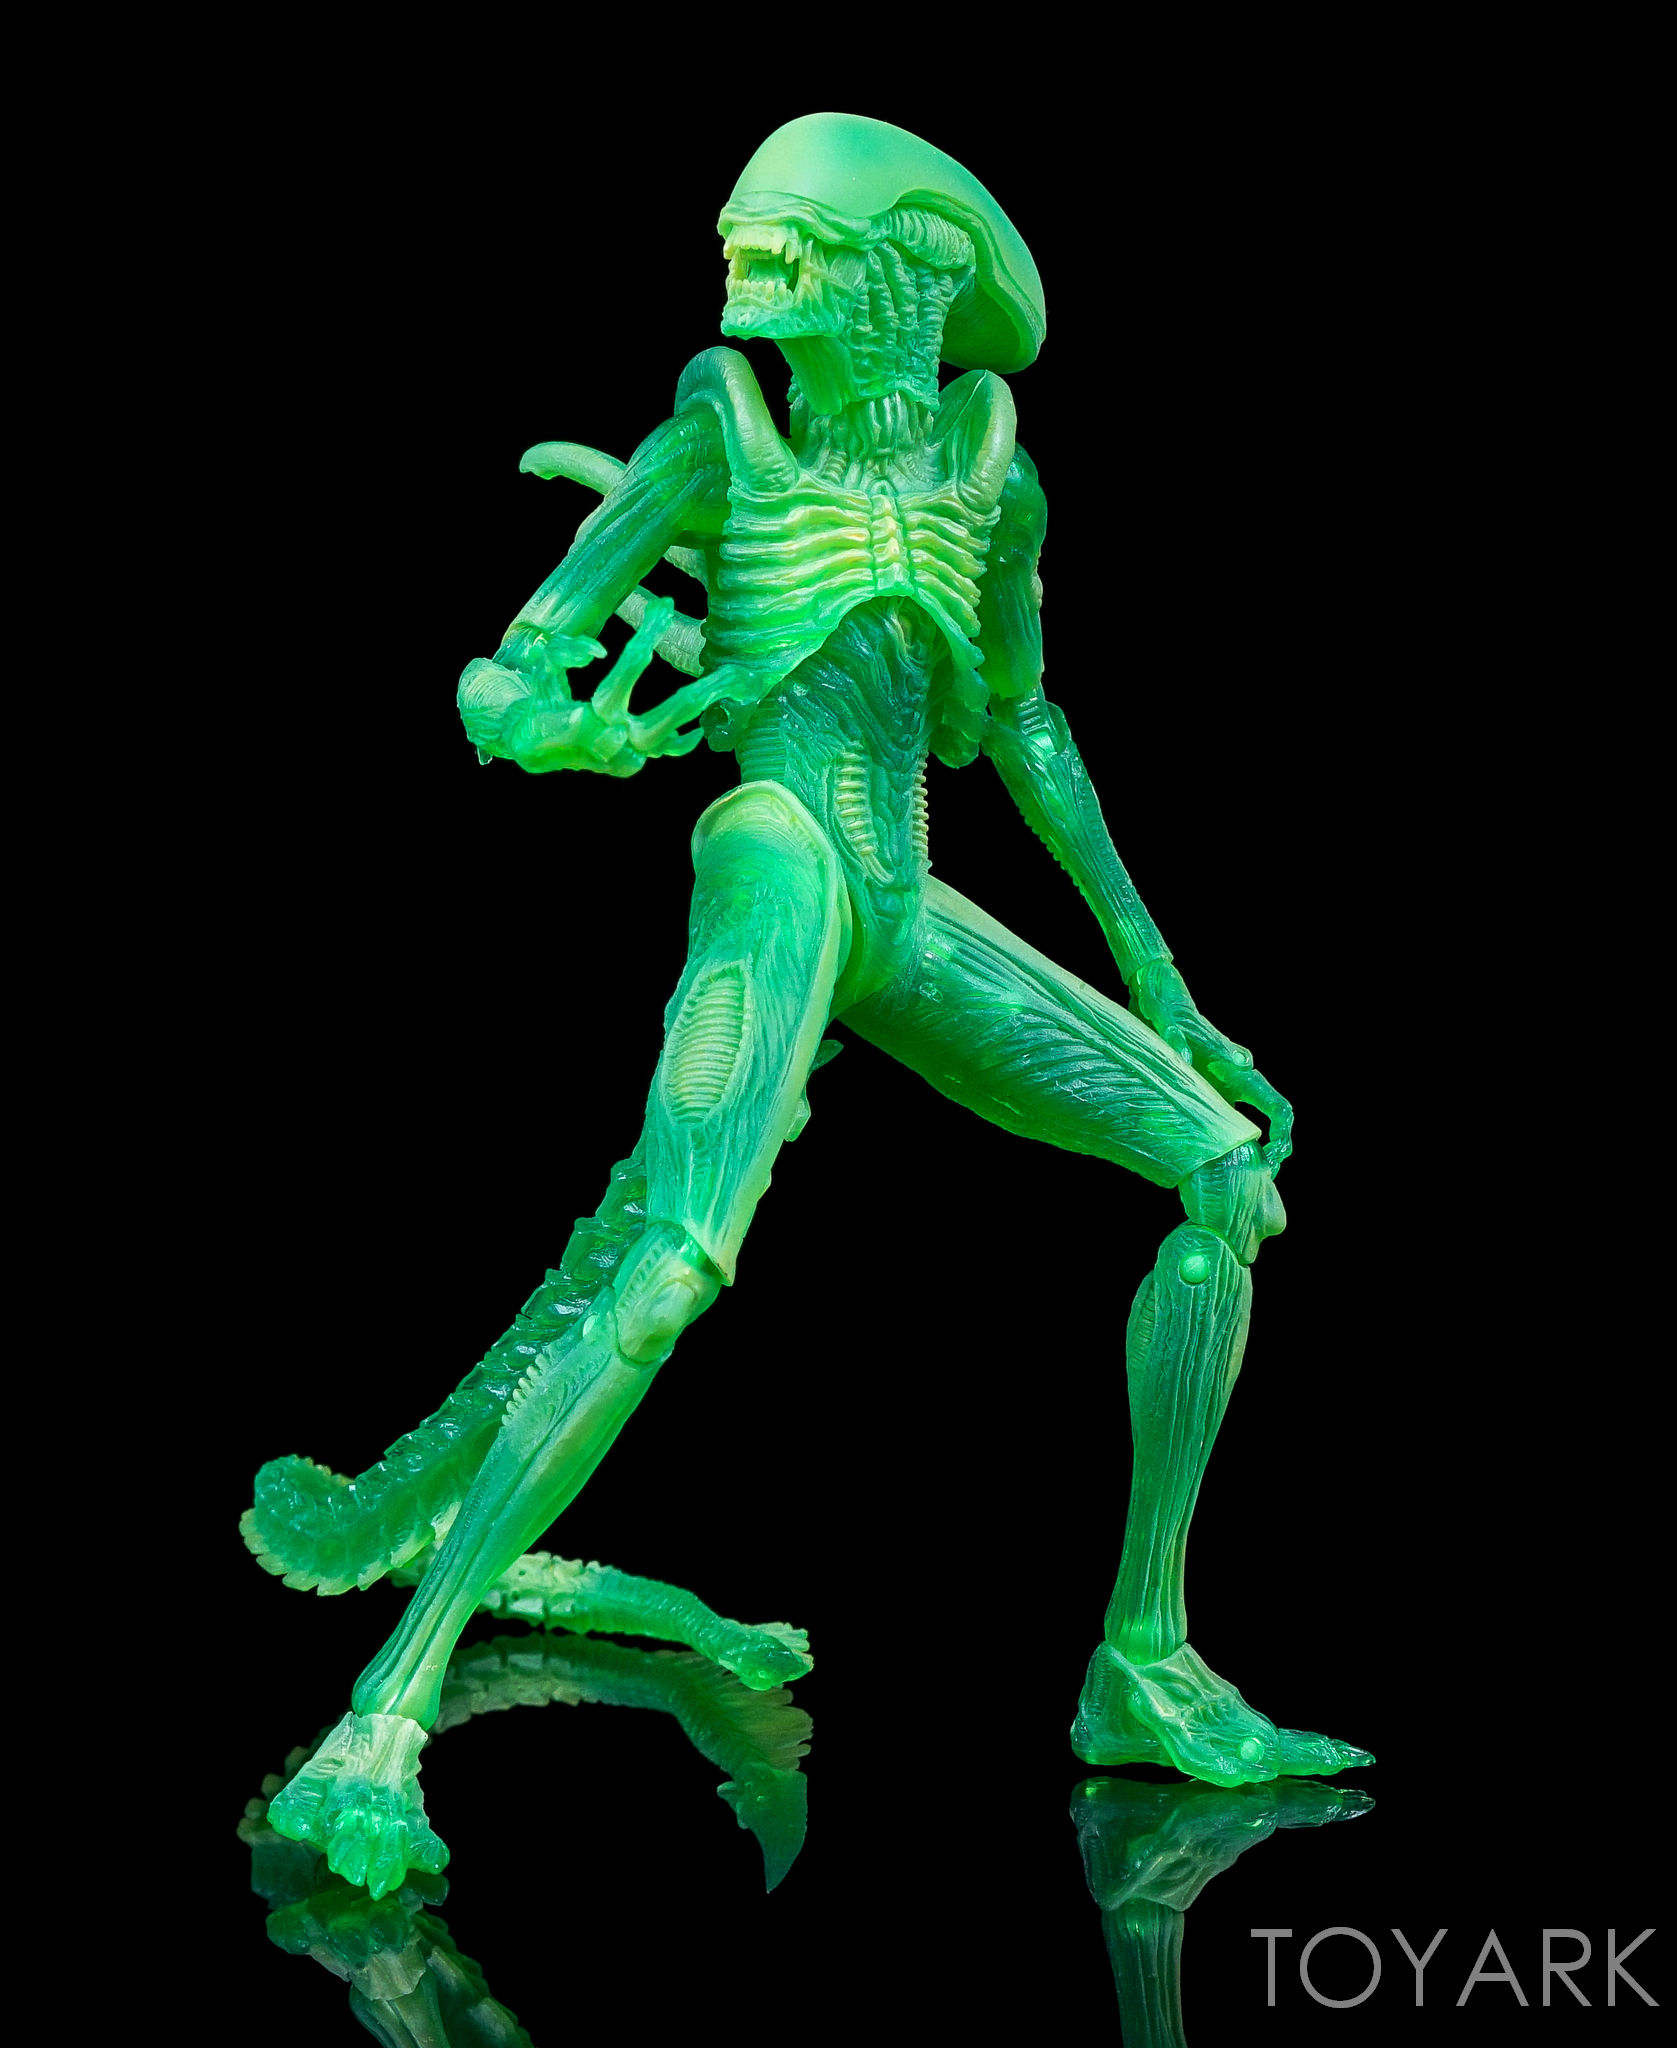 http://news.toyark.com/wp-content/uploads/sites/4/2016/09/NECA-AvP-Thermal-Vision-Alien-023.jpg